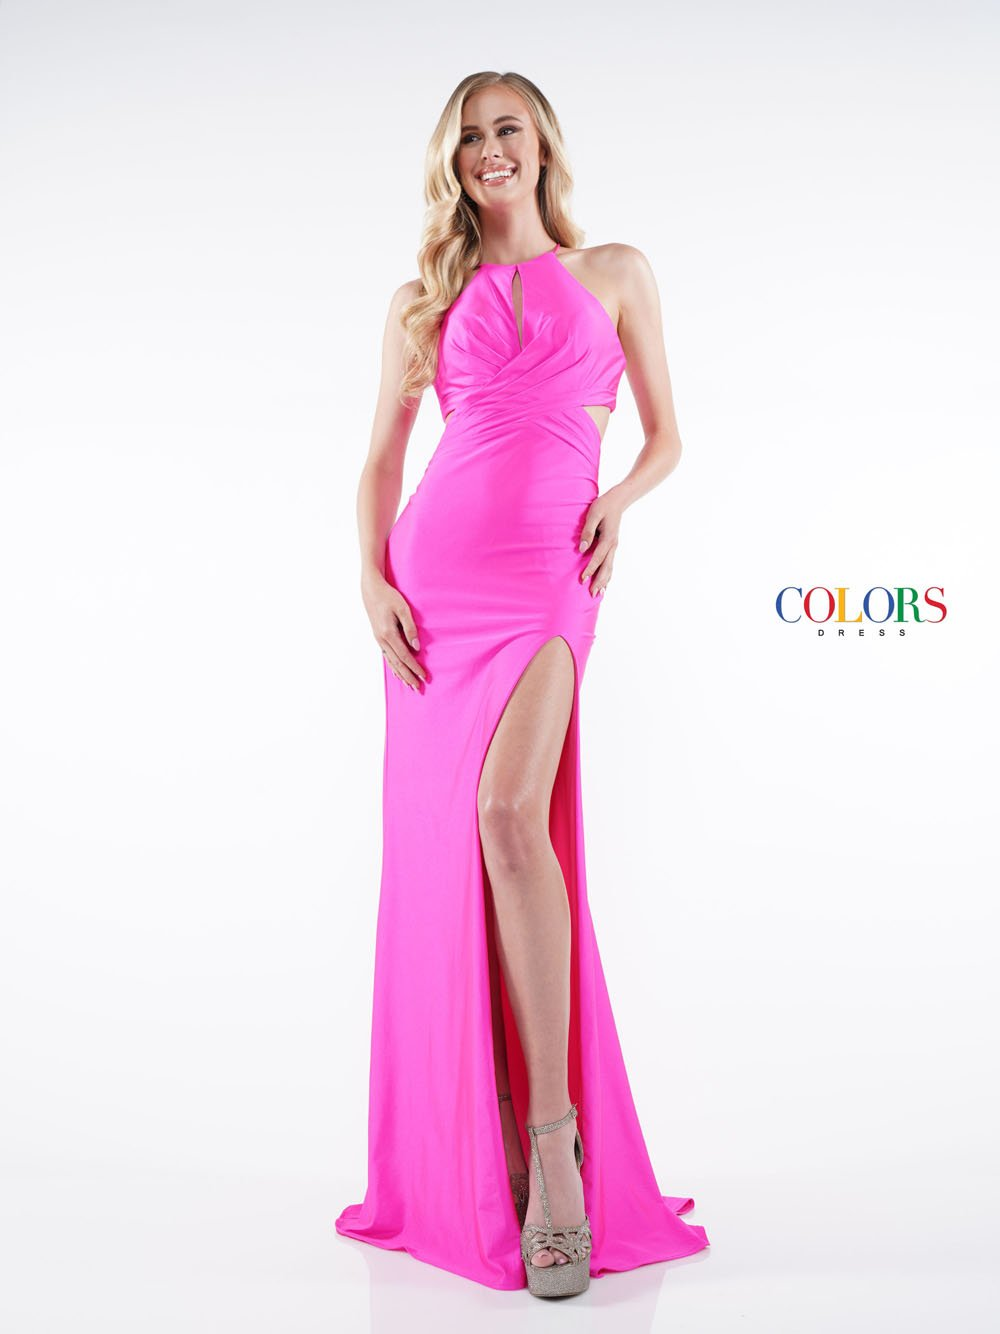 Colors Dress 2294 prom dress images.  Colors 2294 dresses are available in these colors: Hot Pink, Royal, Yellow.